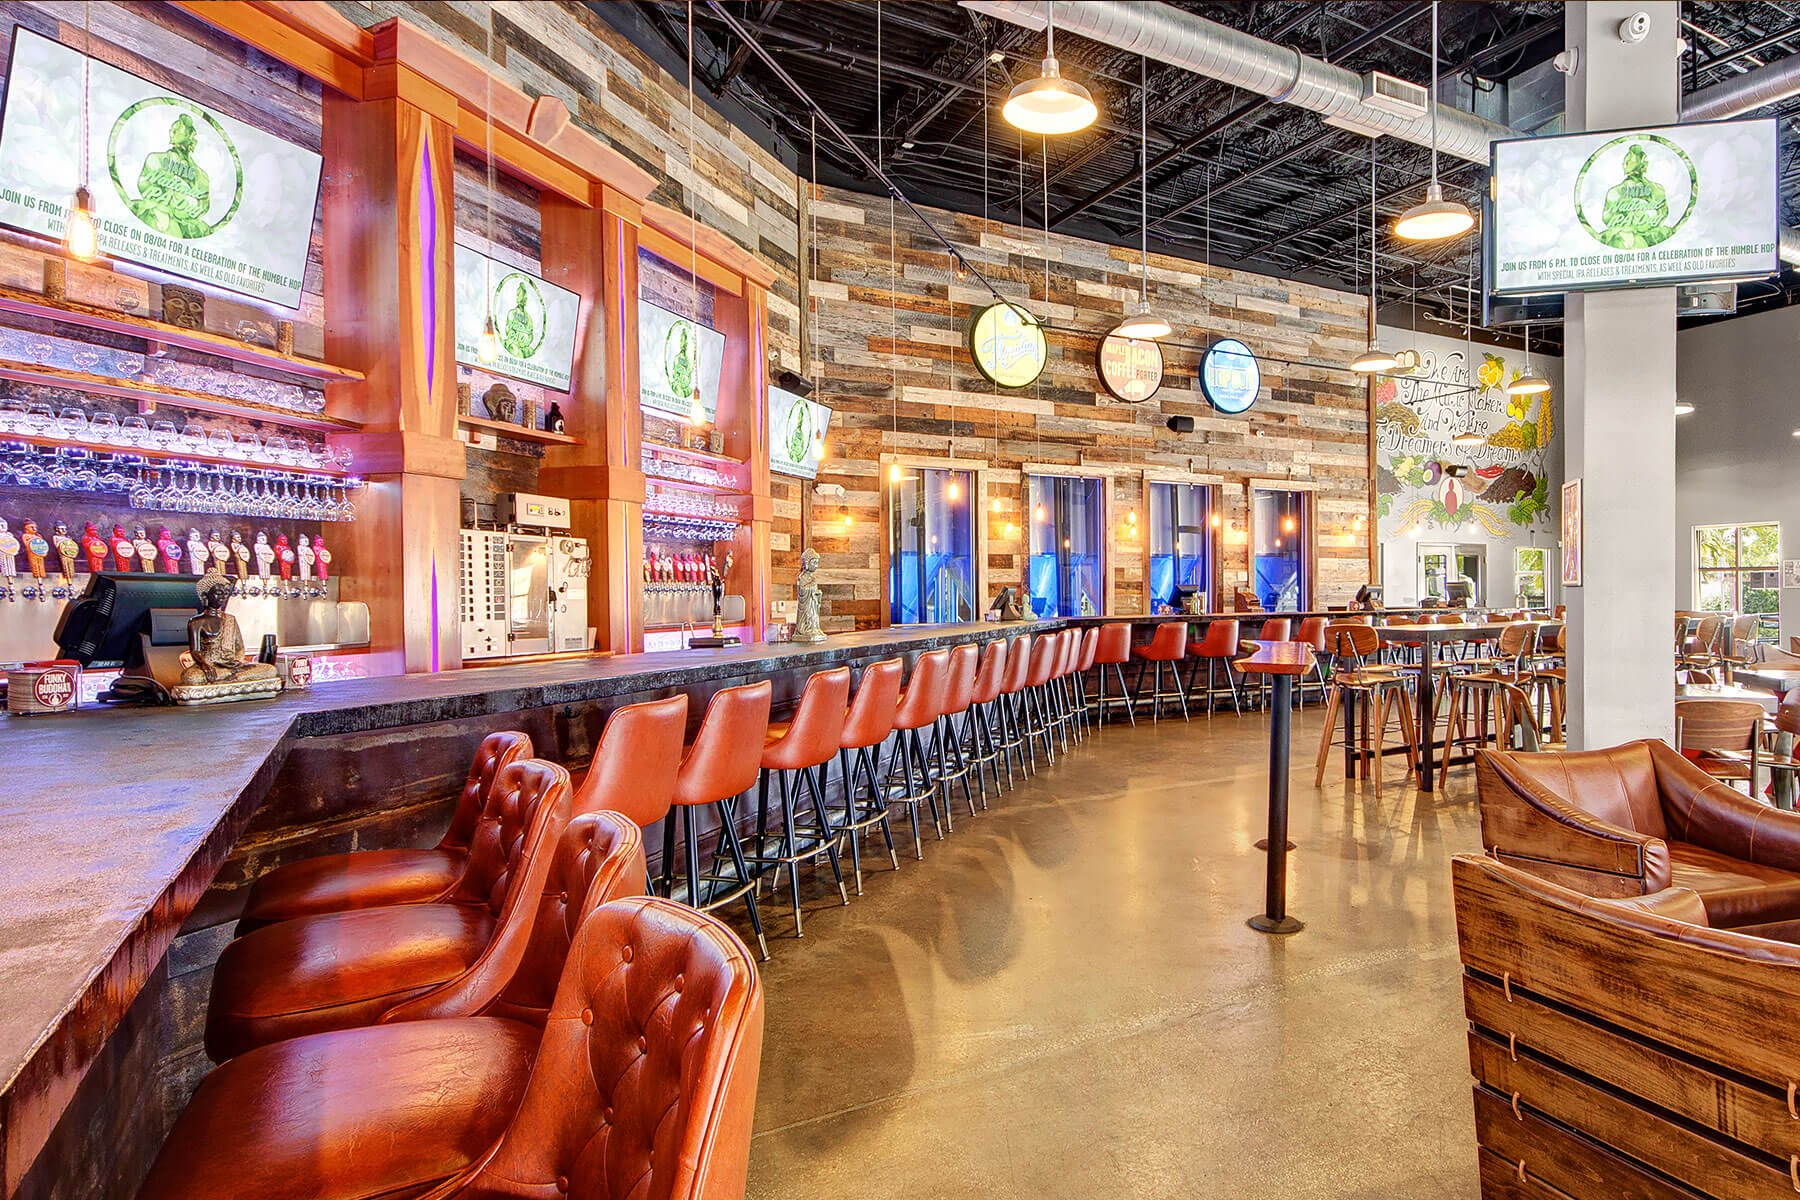 Inside the taproom at Funky Buddha Brewery in Oakland Park, Florida